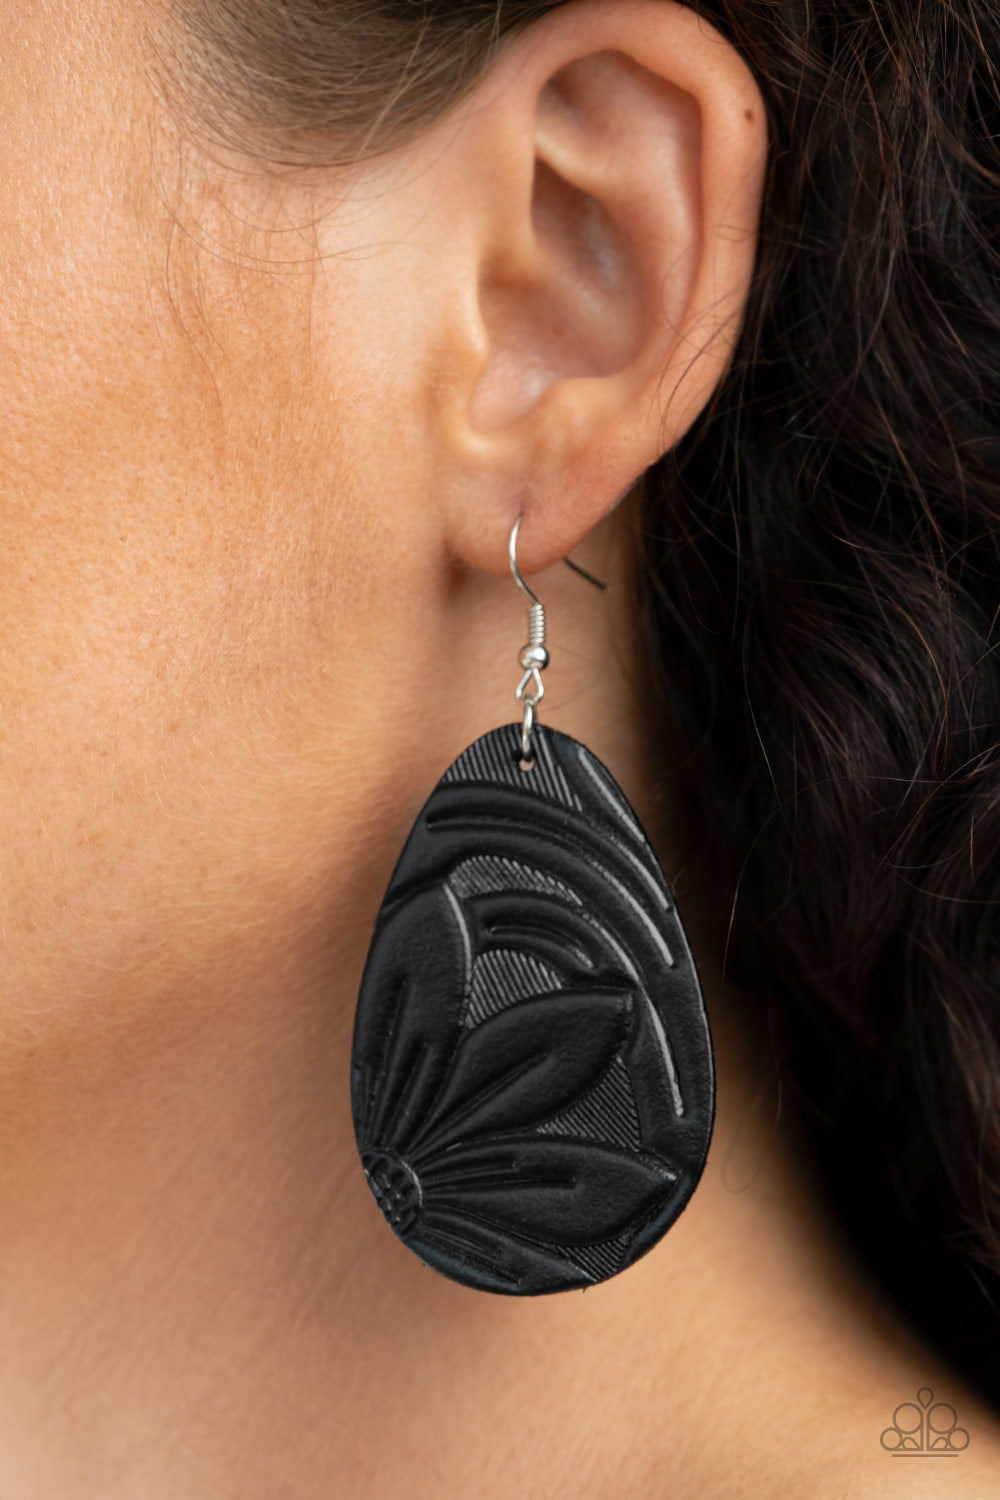 Paparazzi Accessories Garden Therapy - Black Earrings - Lady T Accessories